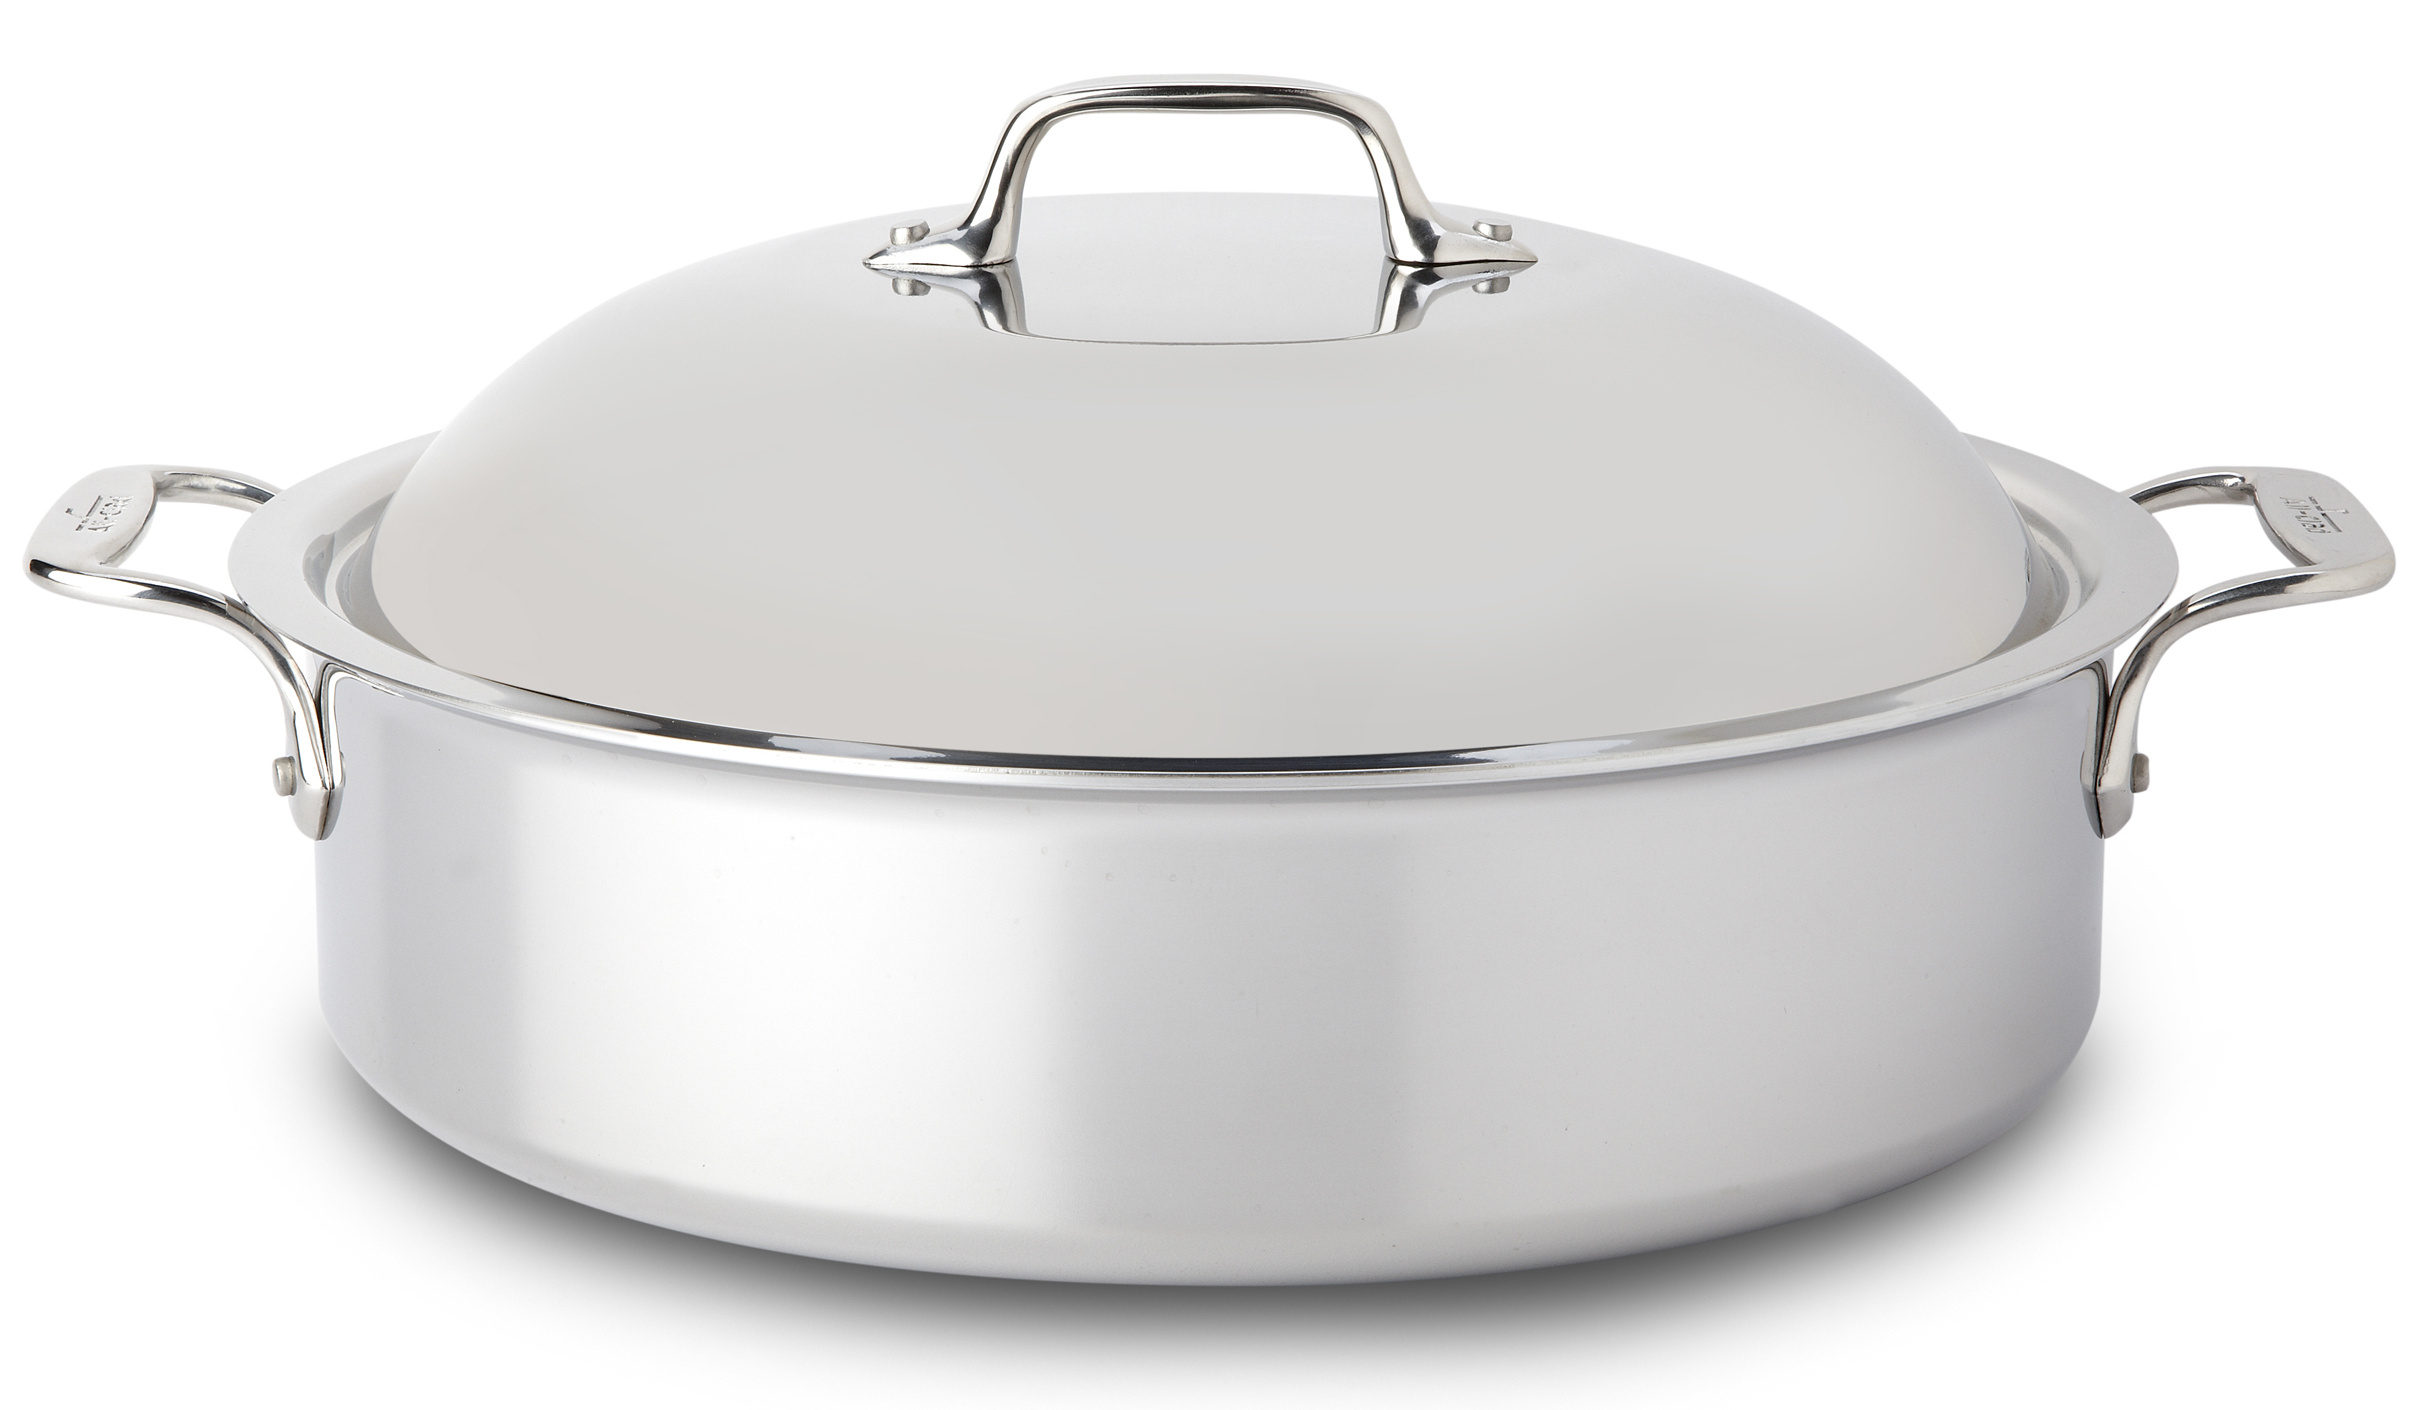 All-Clad Stainless Steel Braiser With Domed Lid and Rack, 6 Quart